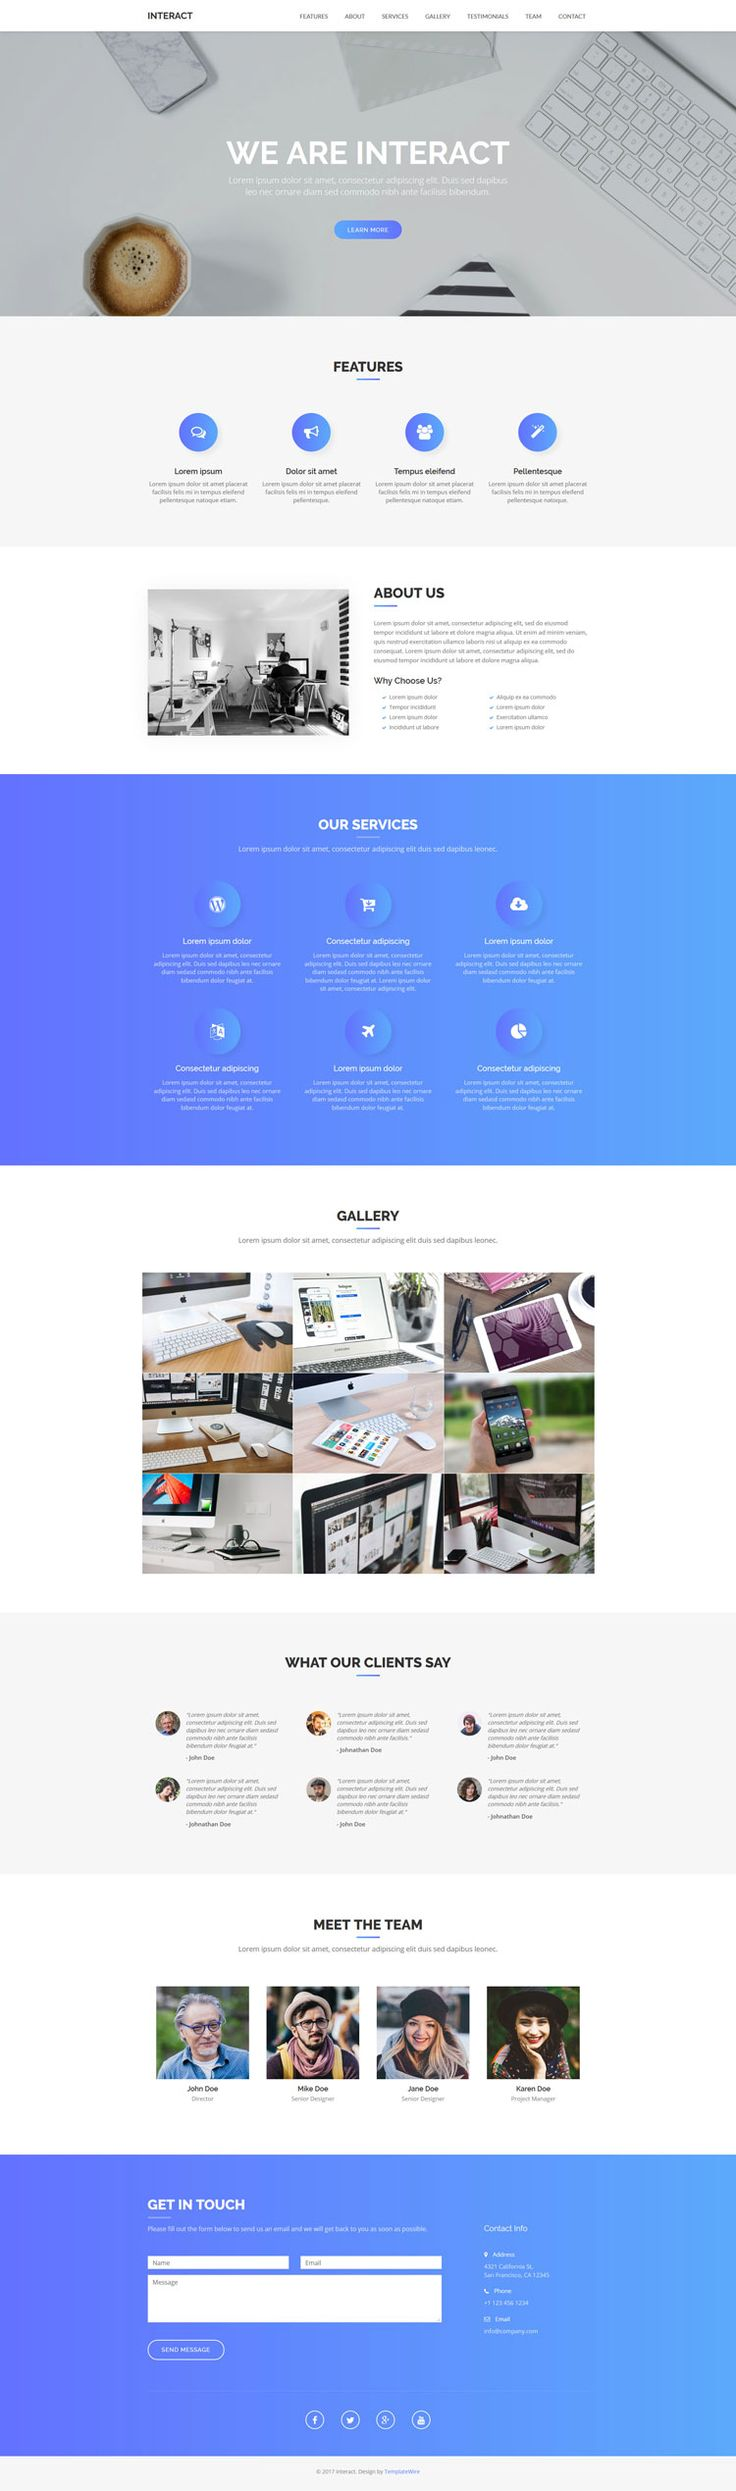 Interact - Free One Page Bootstrap Template